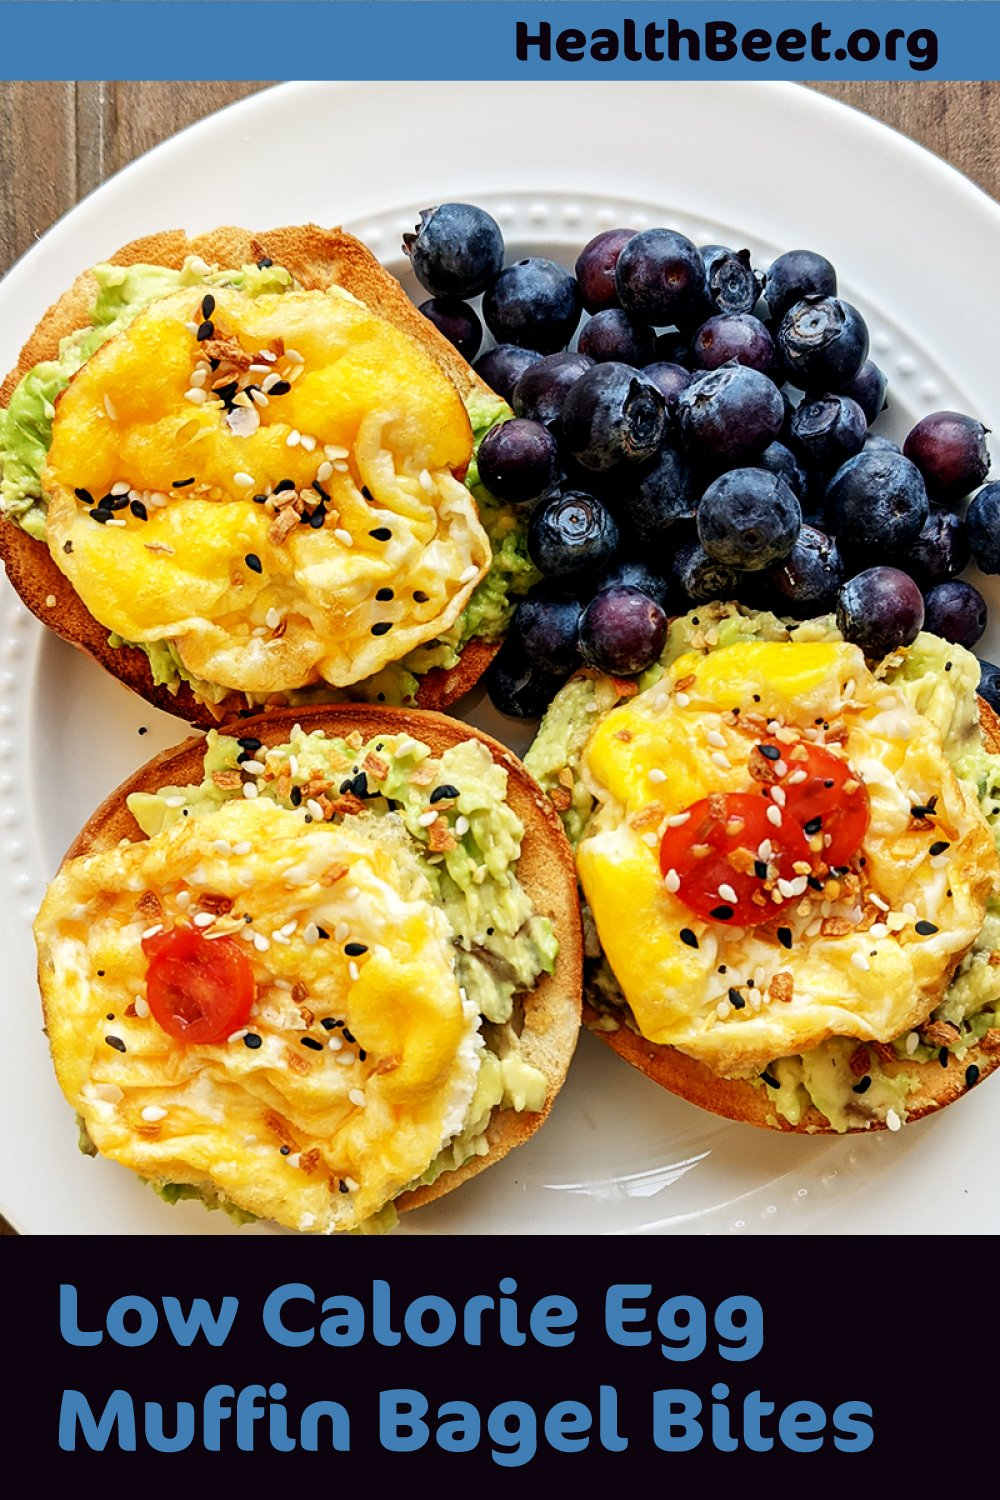 Egg white muffins on a mini bagel with avocado. Low calorie and delicious!